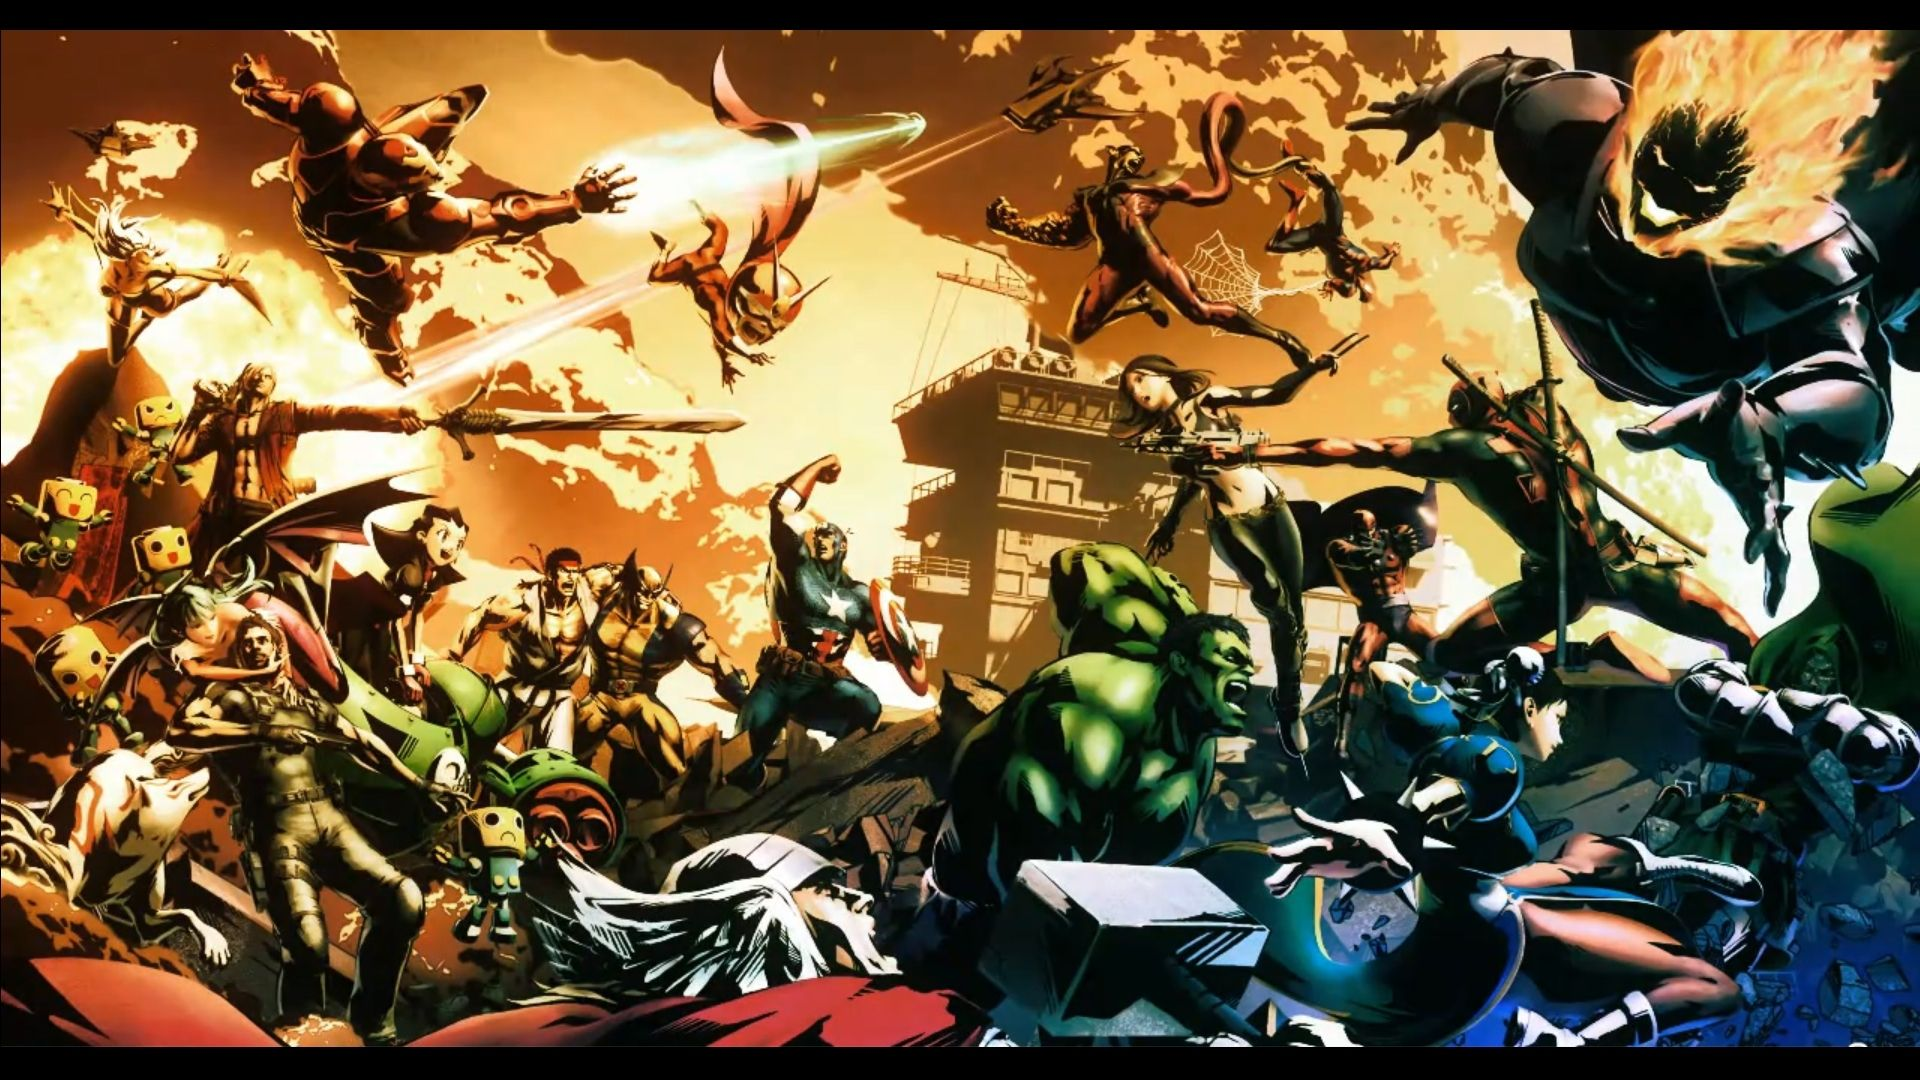 F472f82a96551dde79e98b4321ebce27 Jpg 1920 1080 Marvel Wallpaper Marvel Vs Capcom Creative Graphics